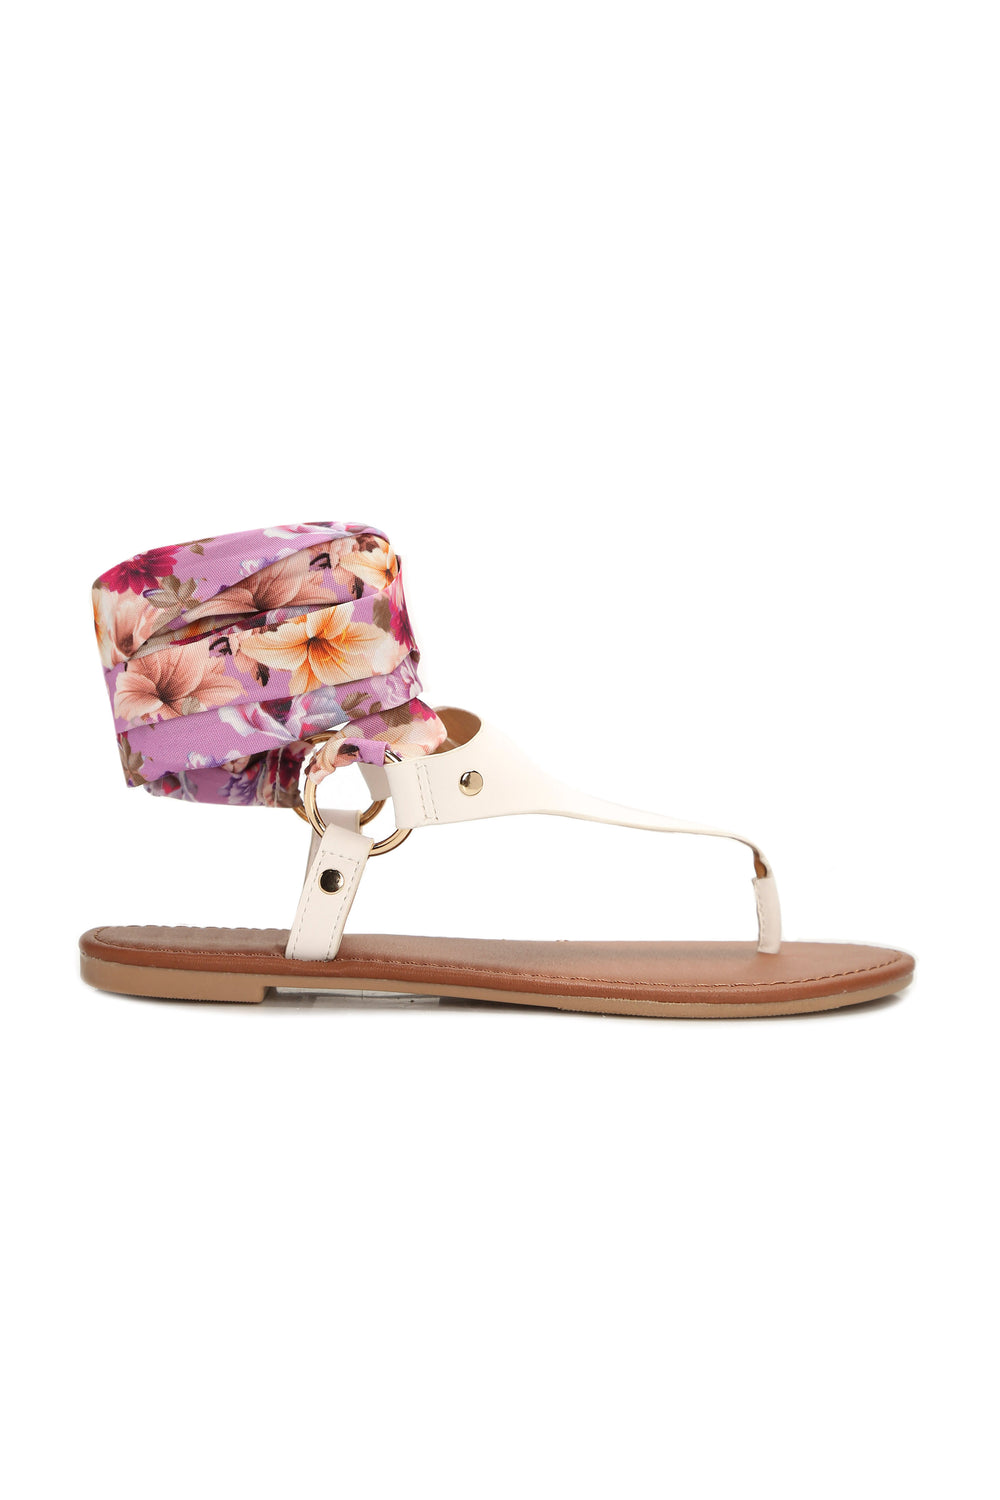 Tie The Look Together Sandal - White